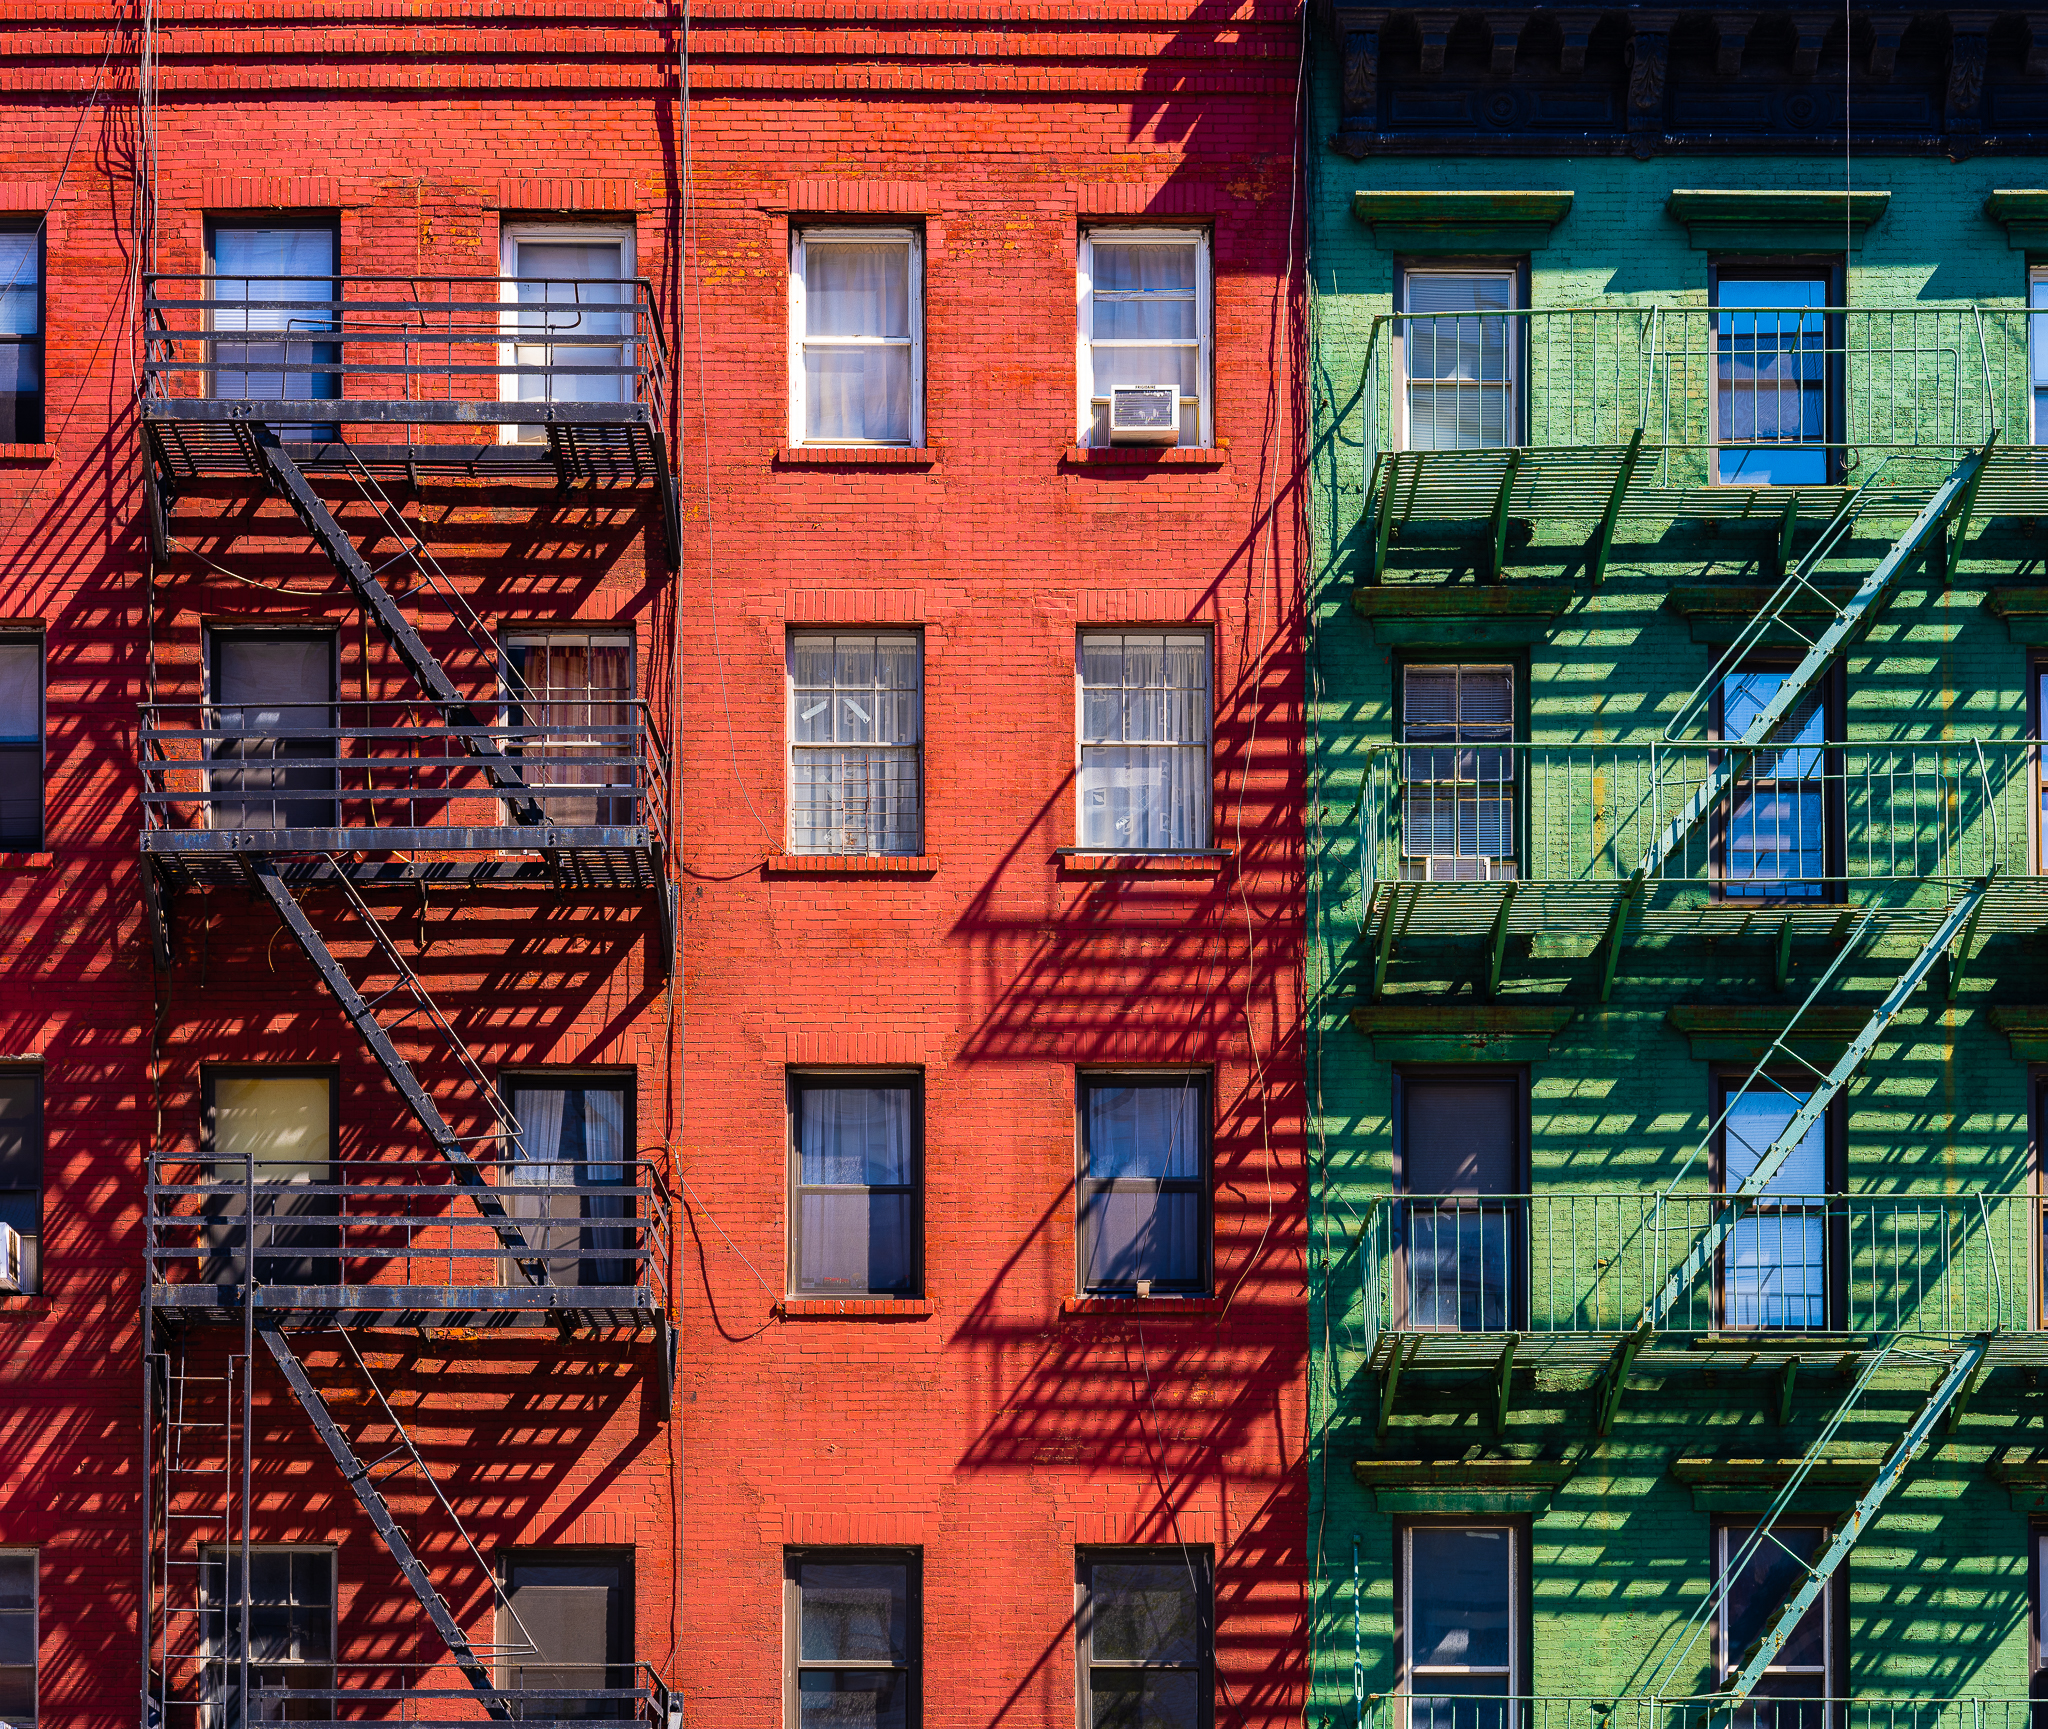 a photo of classic new york architecture with fire escapes